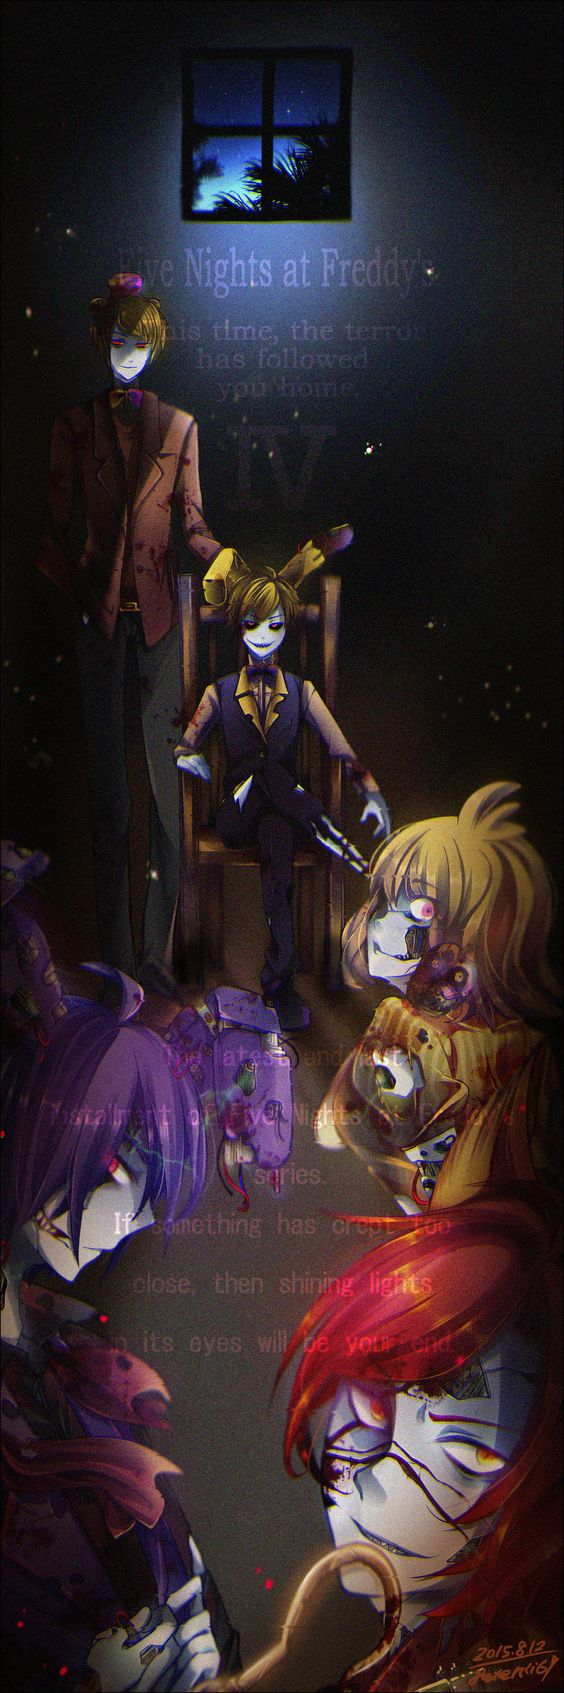 Spookys house of jumpscare e621 - Bonnie What S Your Reaction To Fem Freddy By Blueomoon On Deviantart Five Nights At Freddy S Pinterest Freddy S Fnaf And Anime